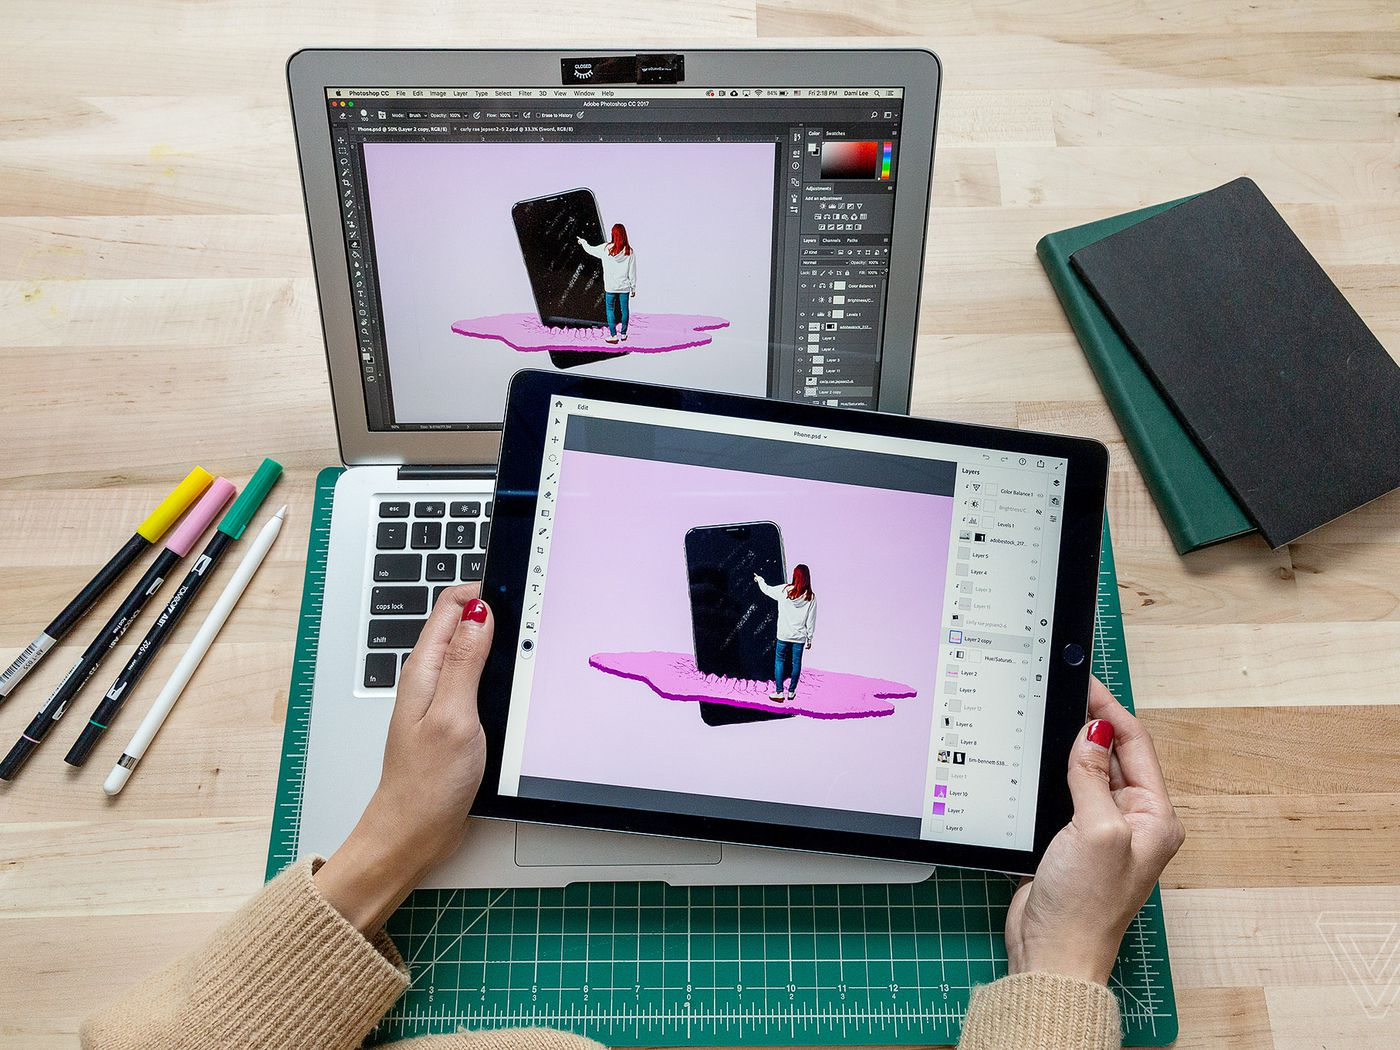 """How Adobe is bringing """"real Photoshop"""" to the iPad - The Verge"""